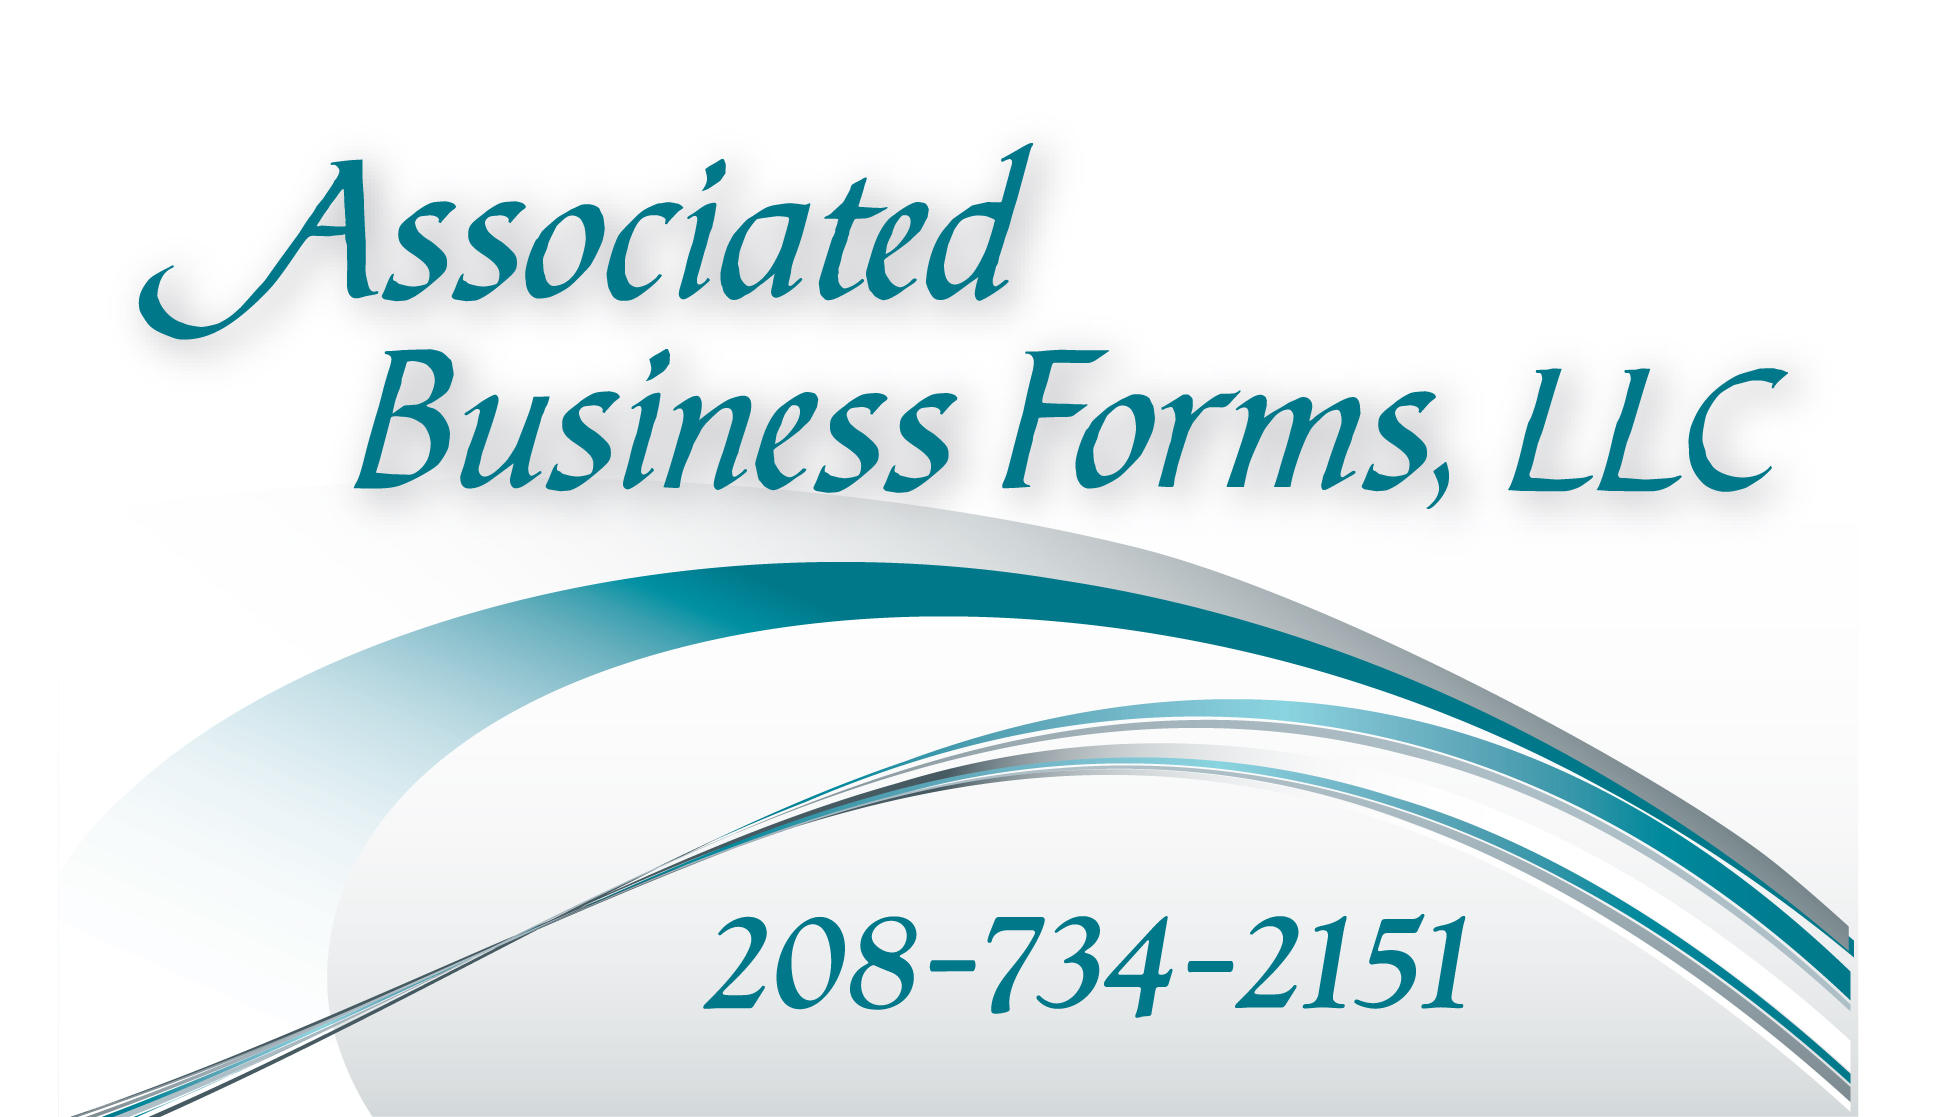 Associated Business Forms, LLC image 1